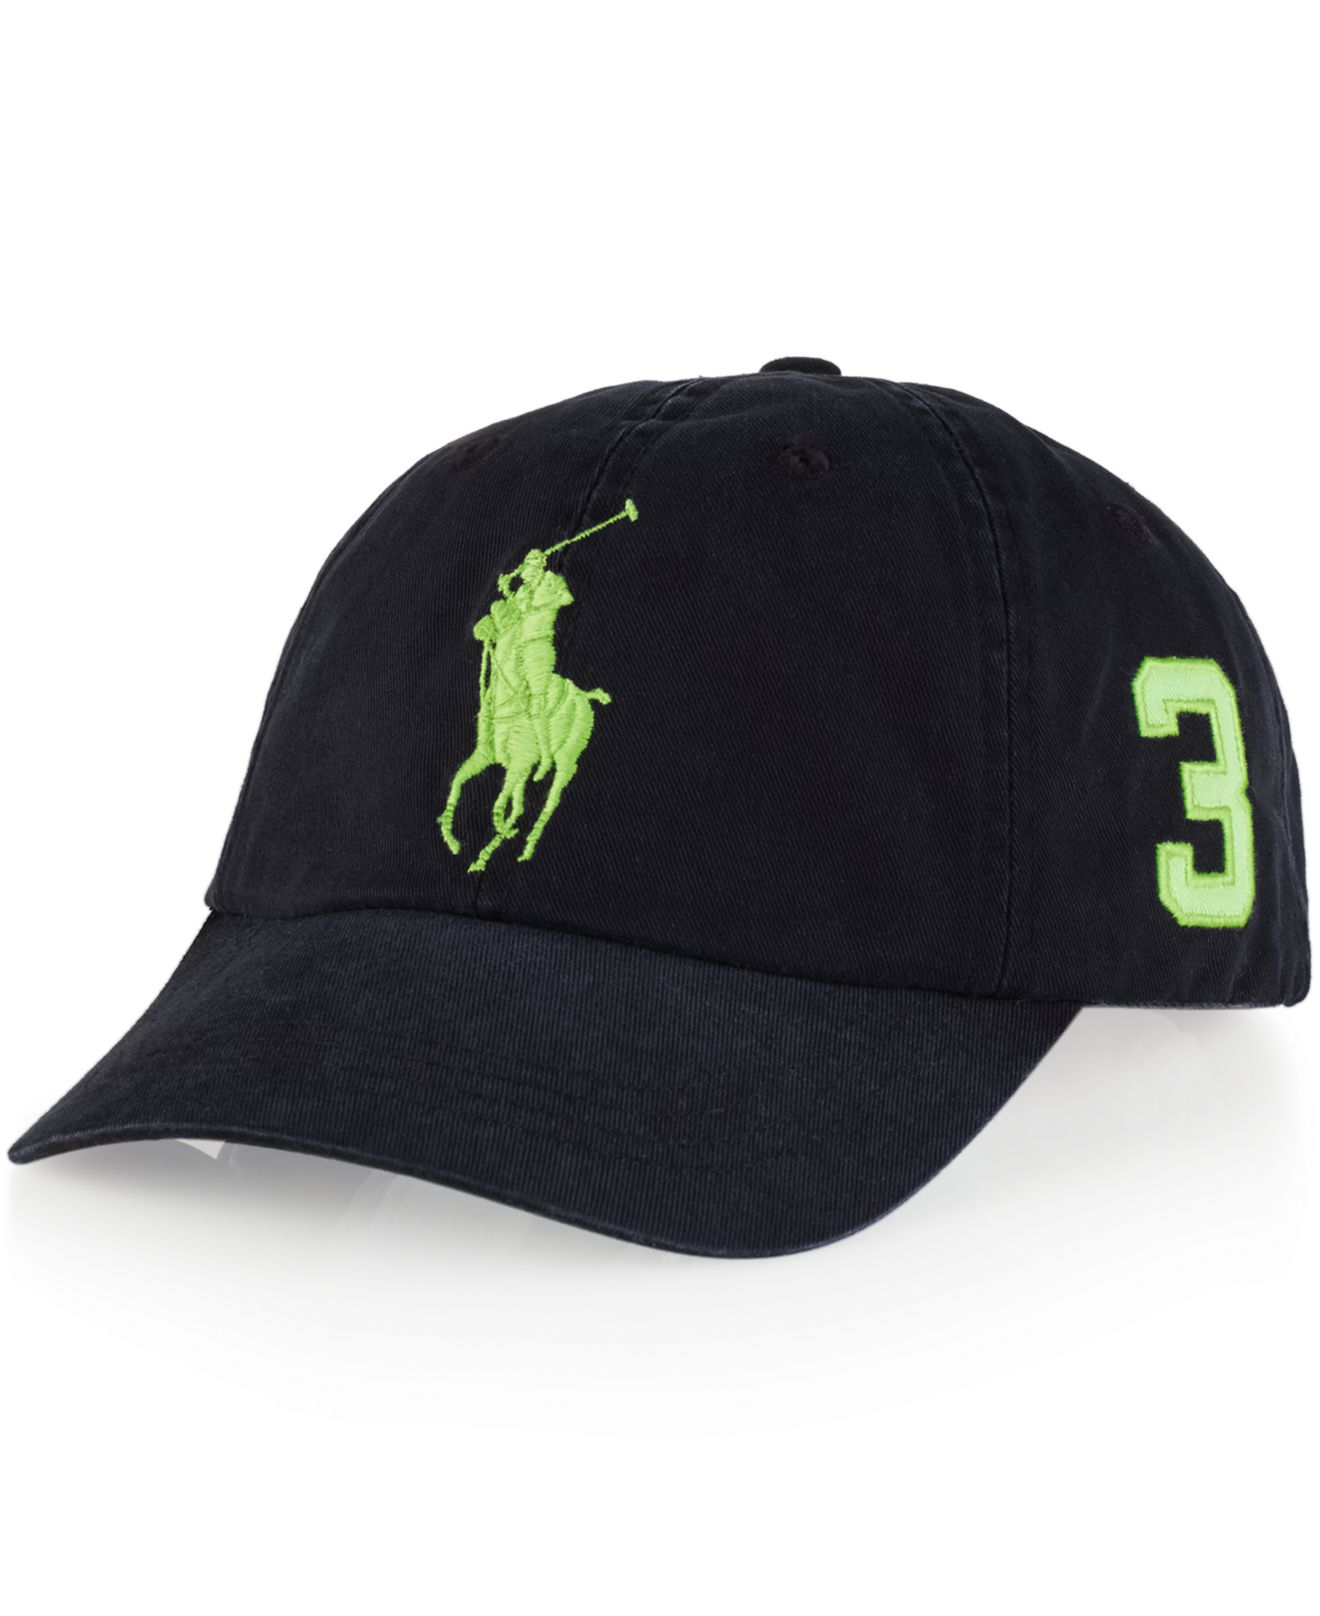 polo ralph lauren classic chino sports cap in black for. Black Bedroom Furniture Sets. Home Design Ideas